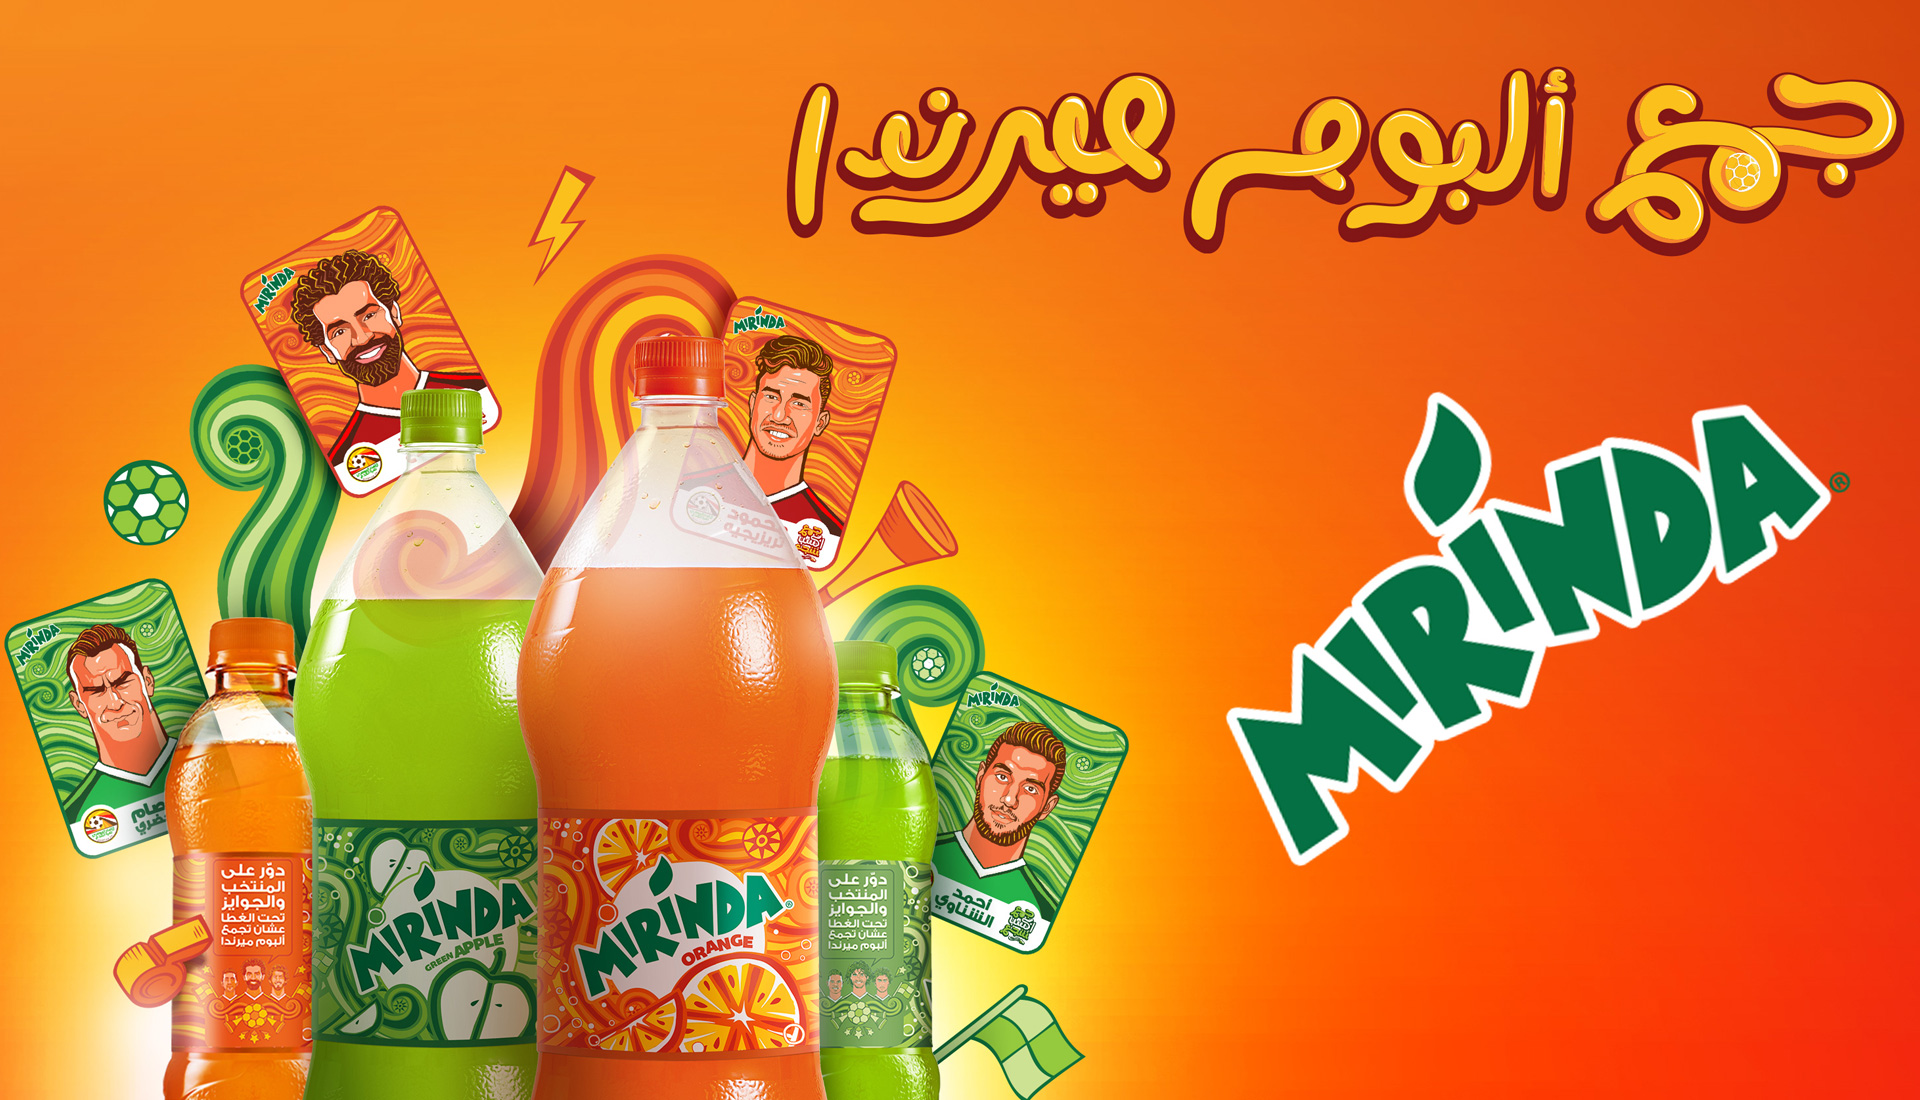 mirinda fun and interactive game - Hive Innovative Group